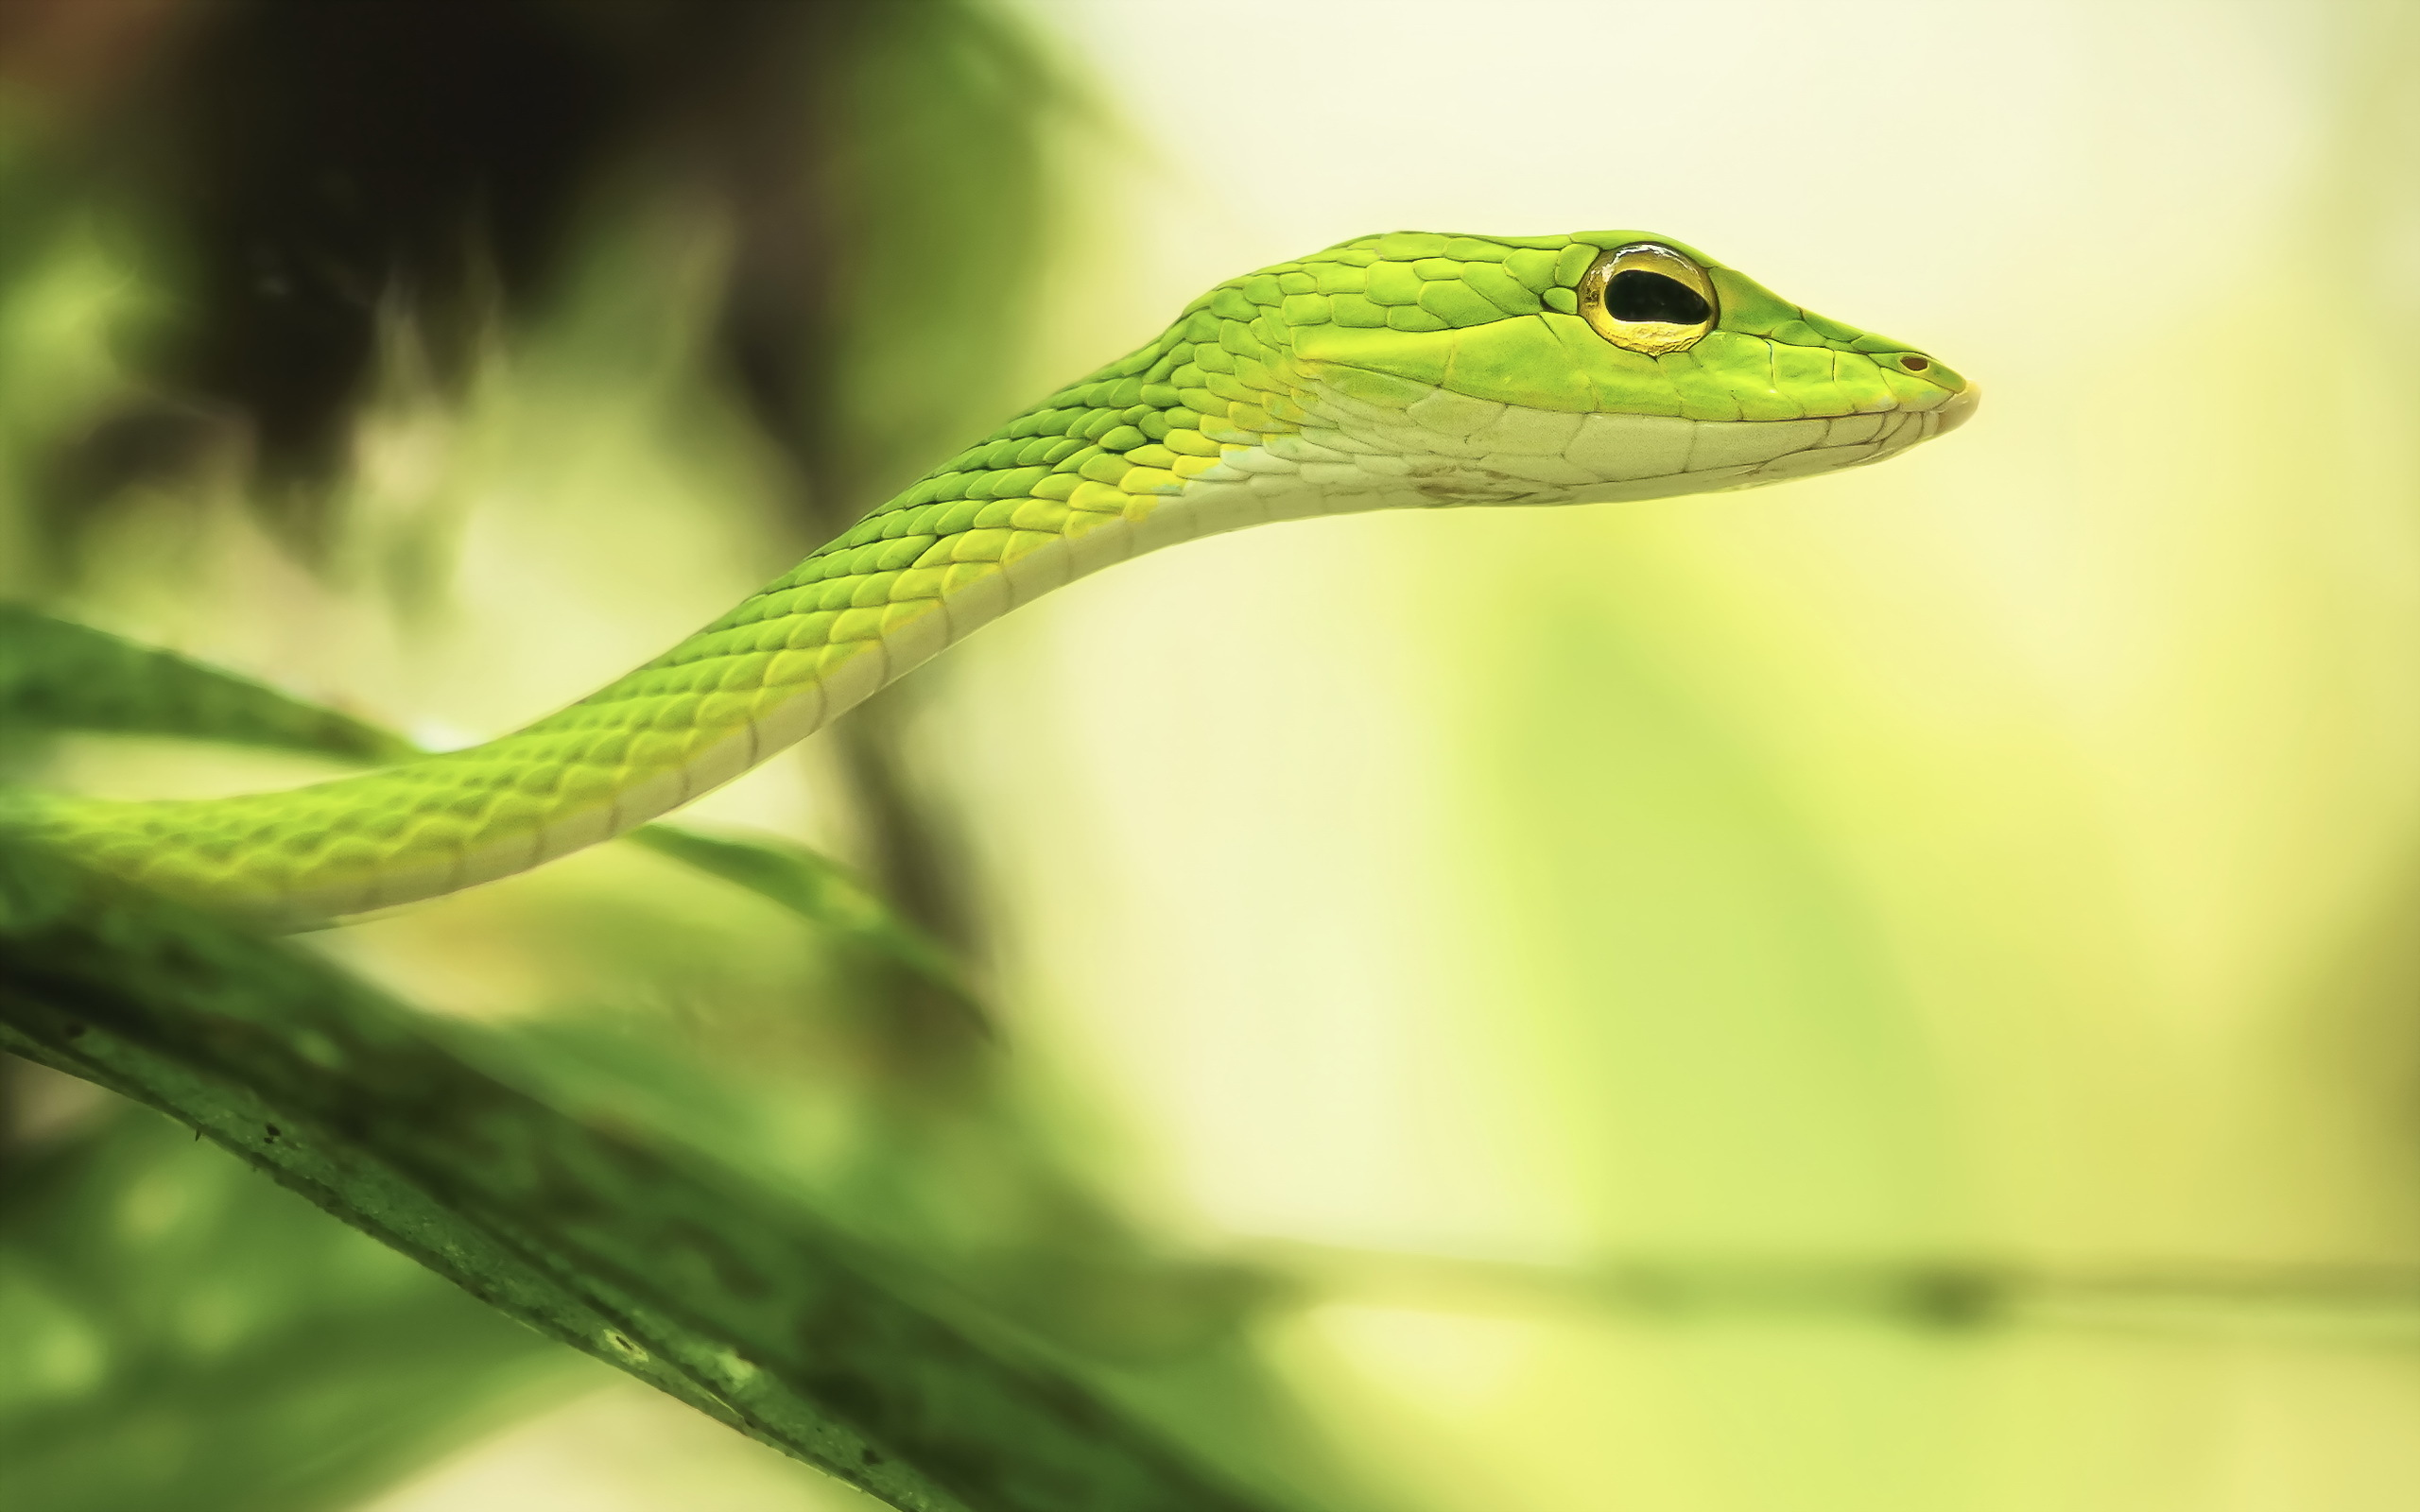 Green Snake Dream When a green snake shows up in a dream it typically symbolizes the resurgence of the dreamers connection with oneself The meanings associated